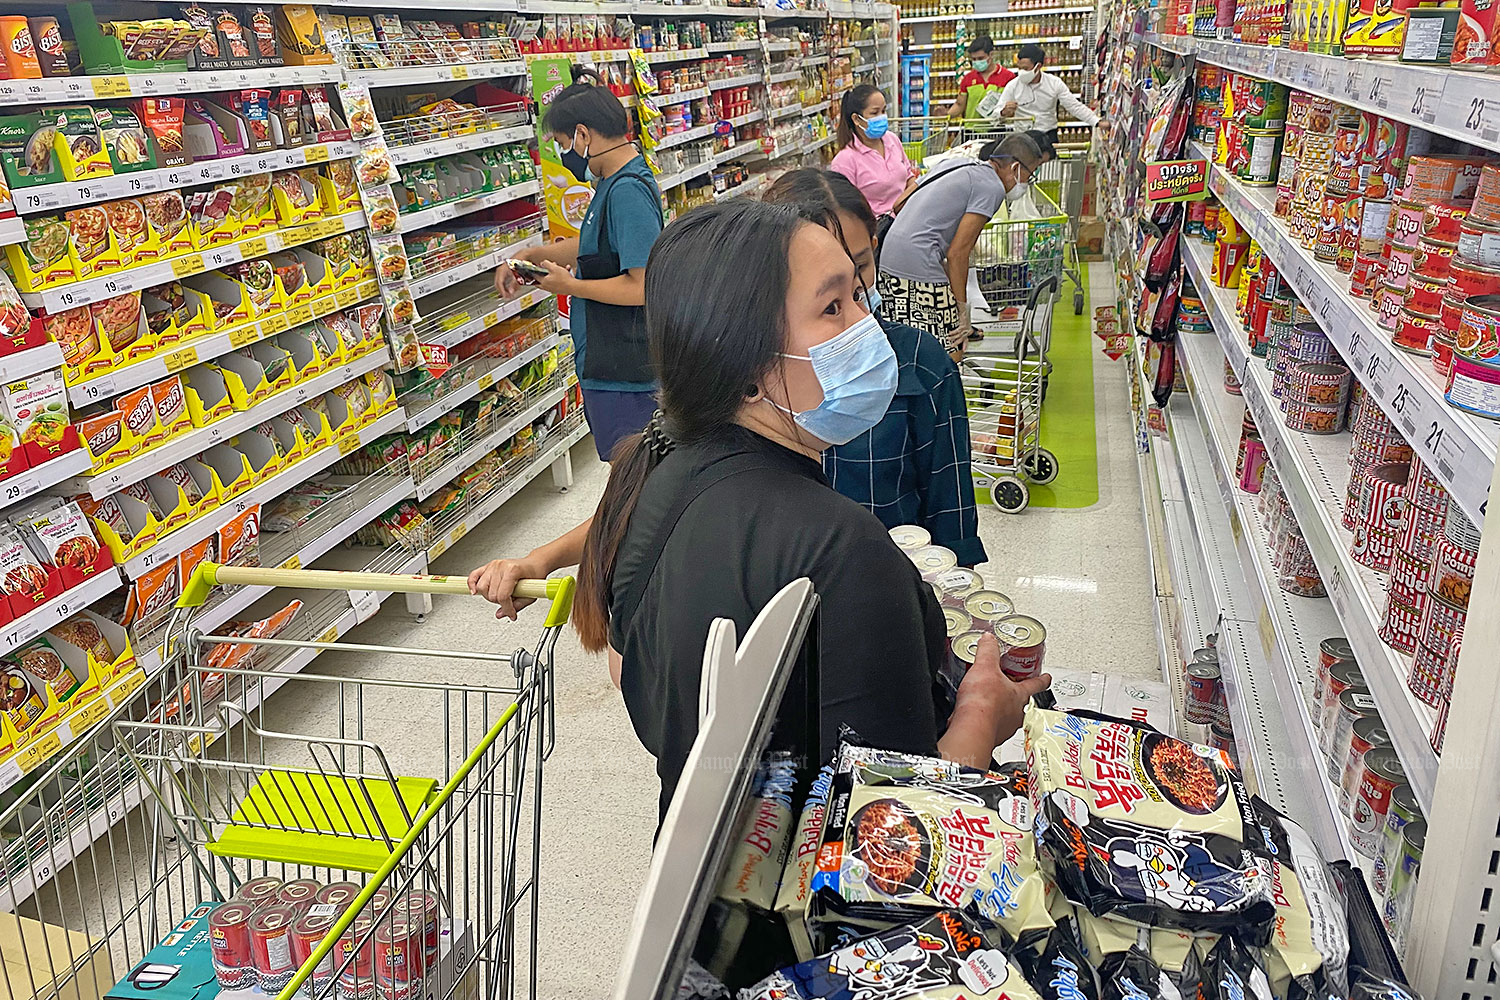 Canning up for the curfew: Women select canned food at a Big C hypermarket in Bangkok's Saphan Khwai area. Consumers in the capital flocked to supermarkets yesterday to shop for essential items after the Centre for Covid-19 Situation Administration decided to impose a curfew and restrict people's movements for 14 days. (Photo: Nutthawat Wicheanbut)